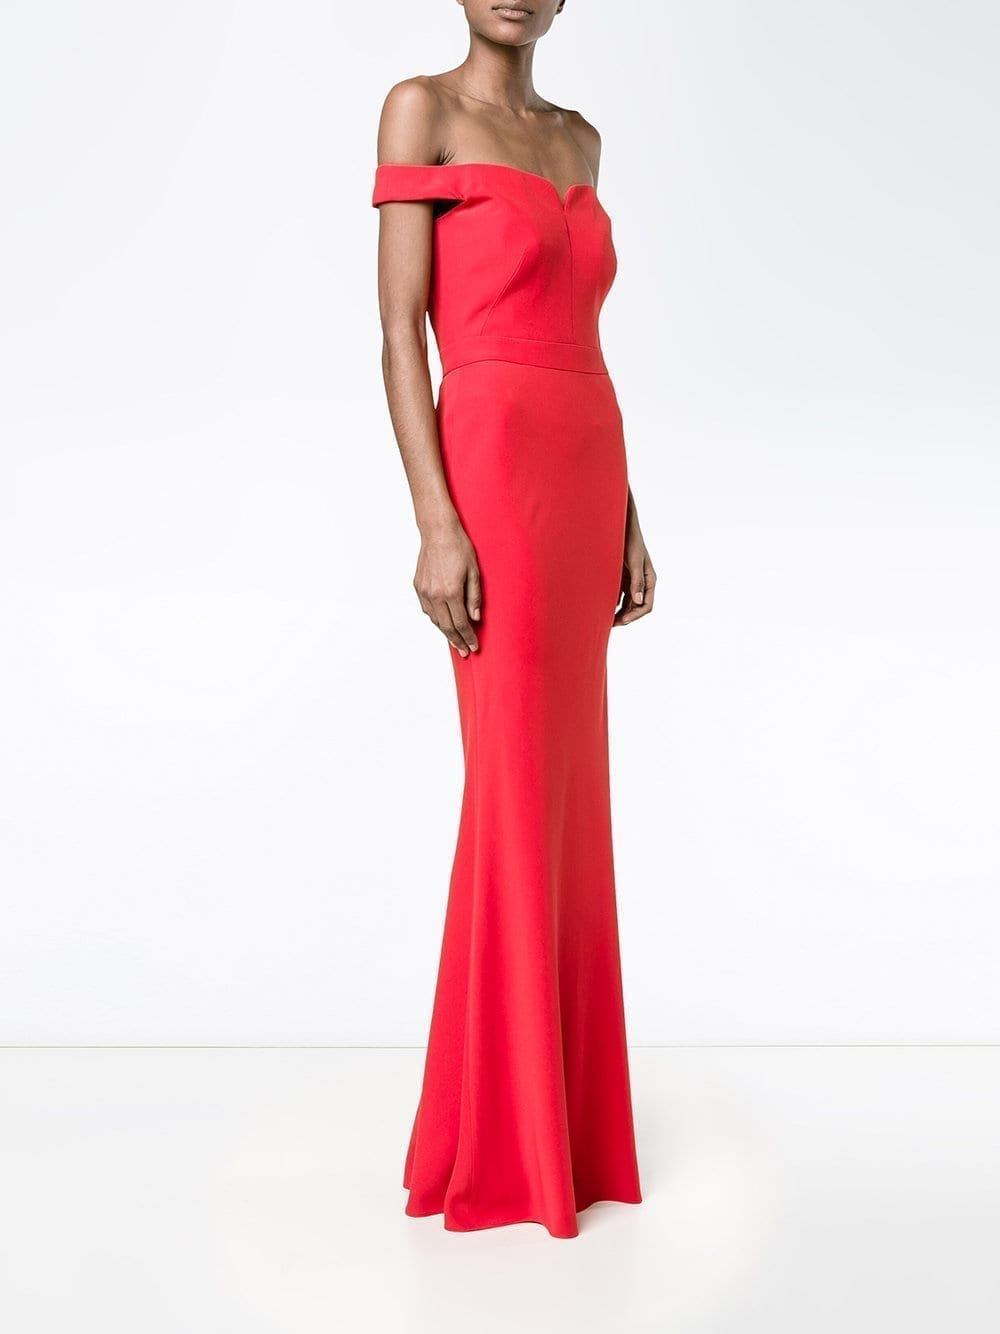 ALEXANDER MCQUEEN Off Shoulder Red Gown